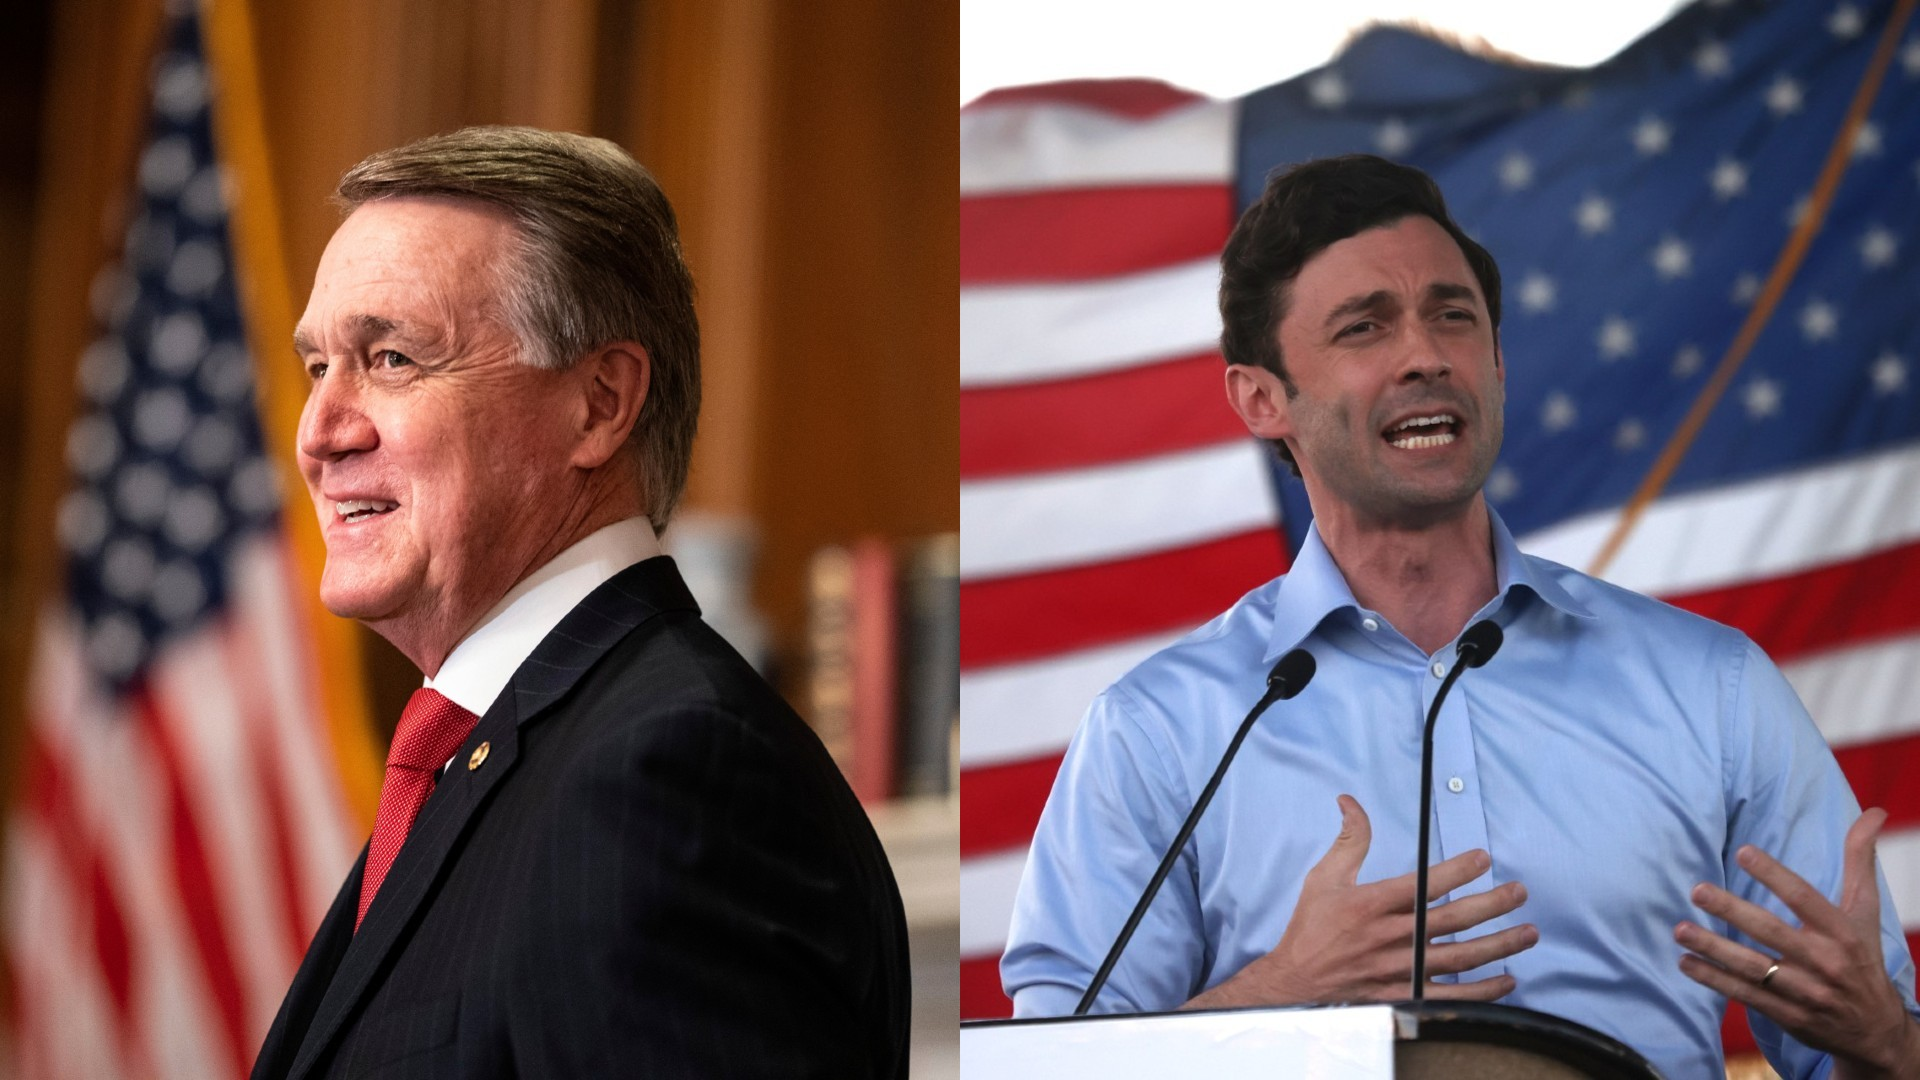 Sen. David Perdue, left, Democratic challenger Jon Ossoff, right. (AP Photo/Getty Images)